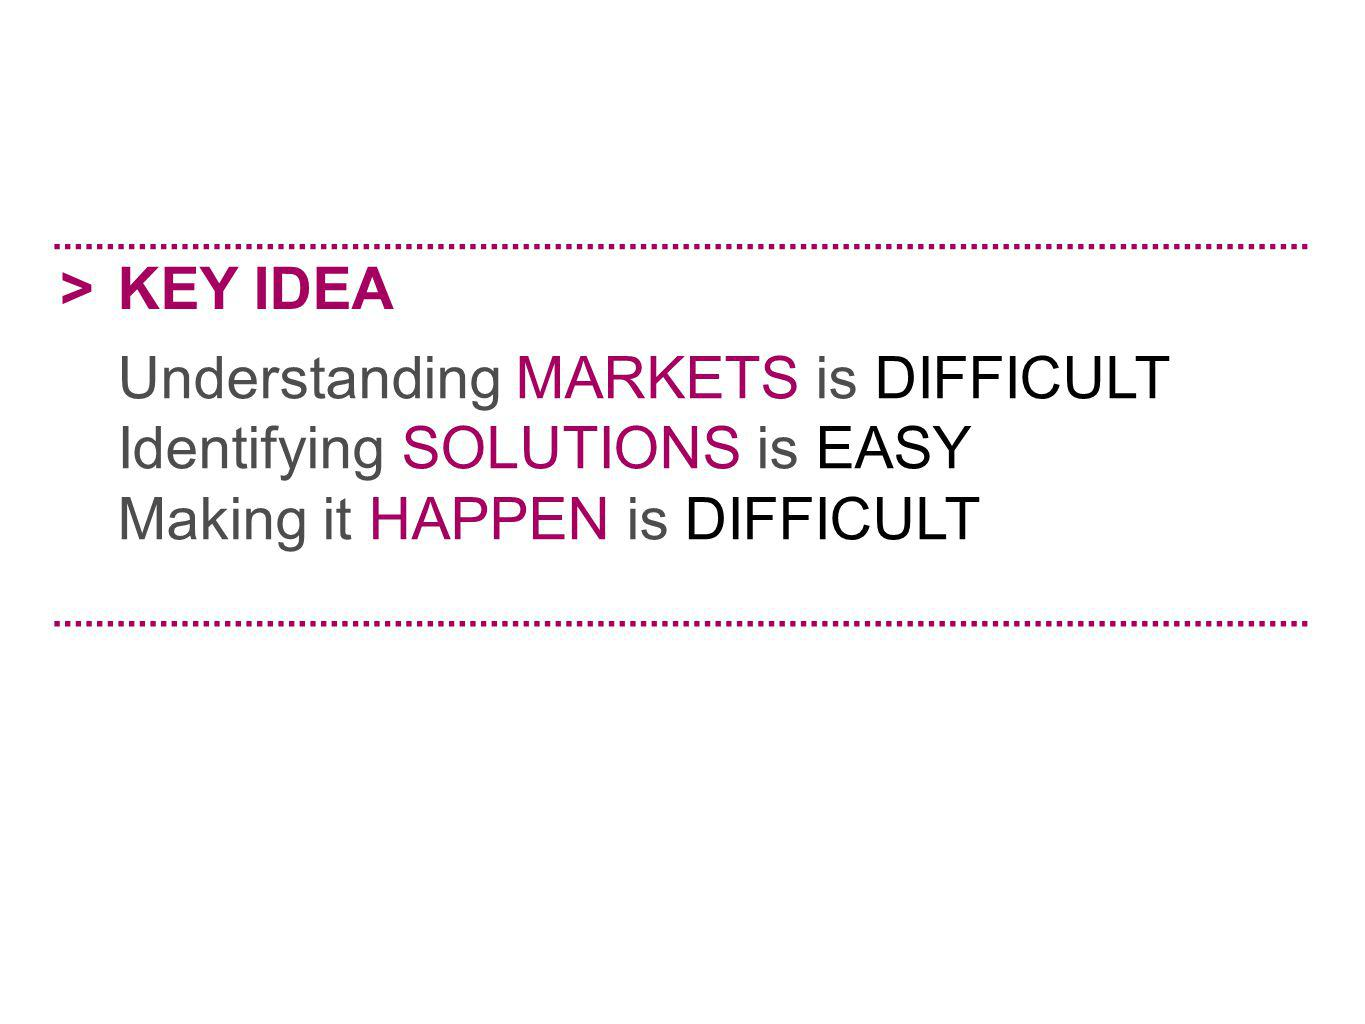 > KEY IDEA. Understanding MARKETS is DIFFICULT. Identifying SOLUTIONS is EASY.